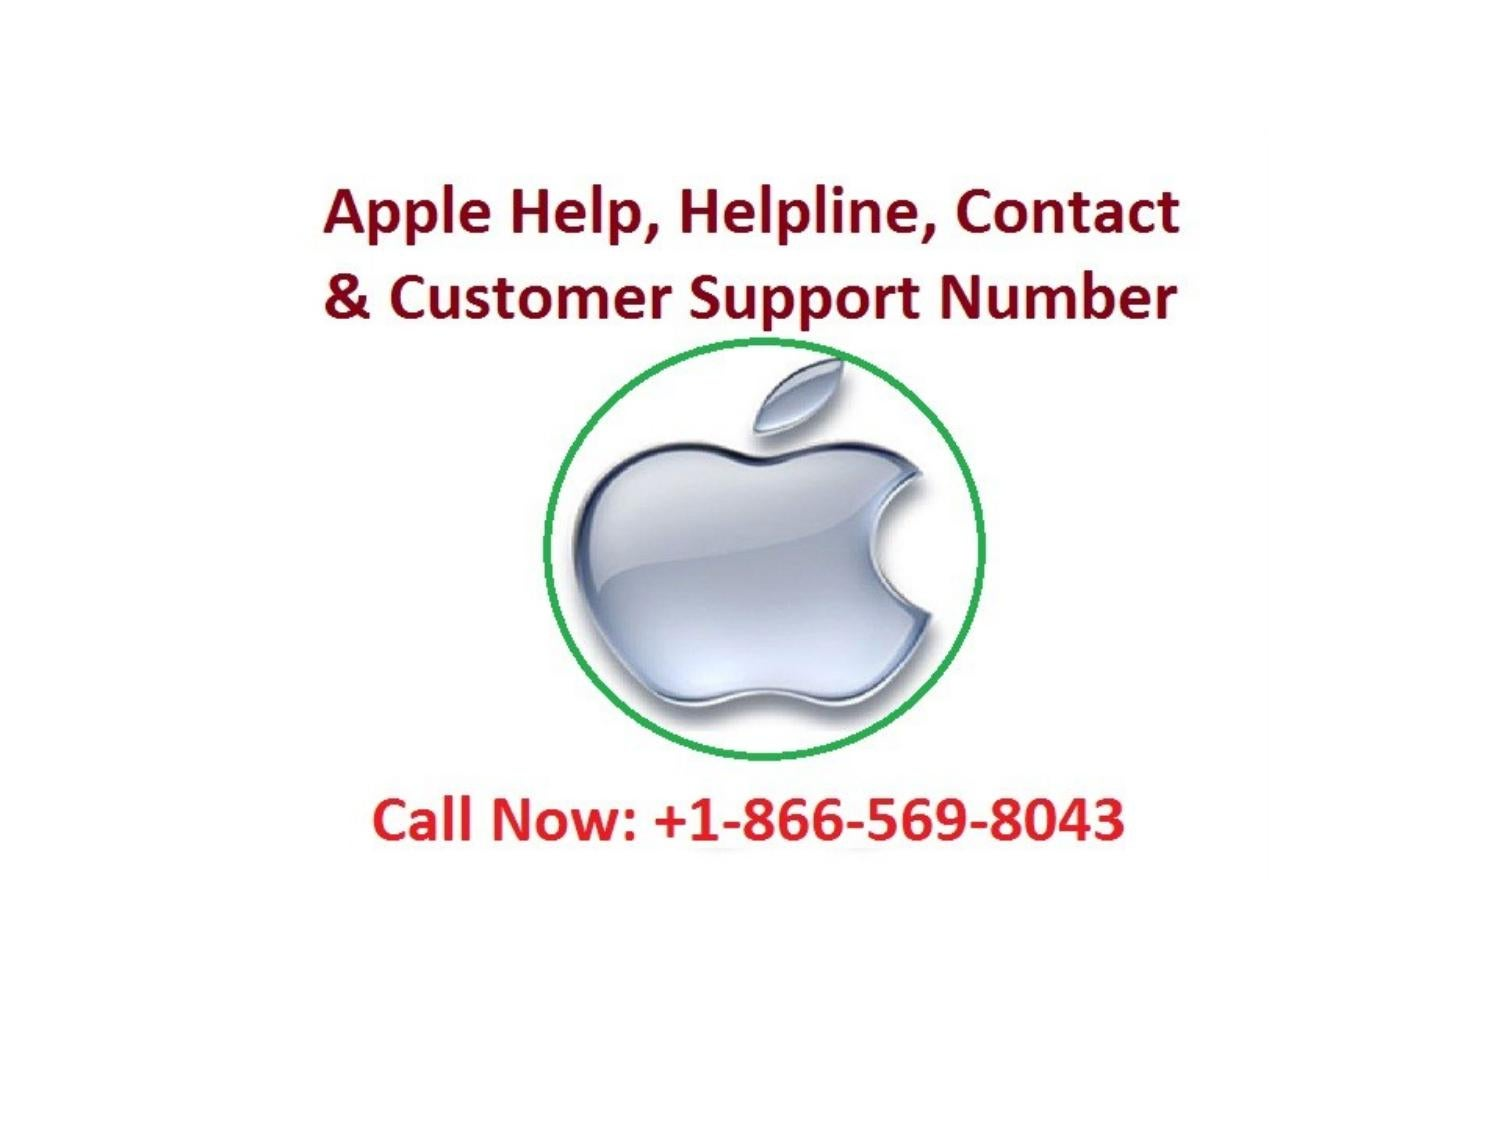 apple help, helpline, contact & support number +1-866-569-8043 by